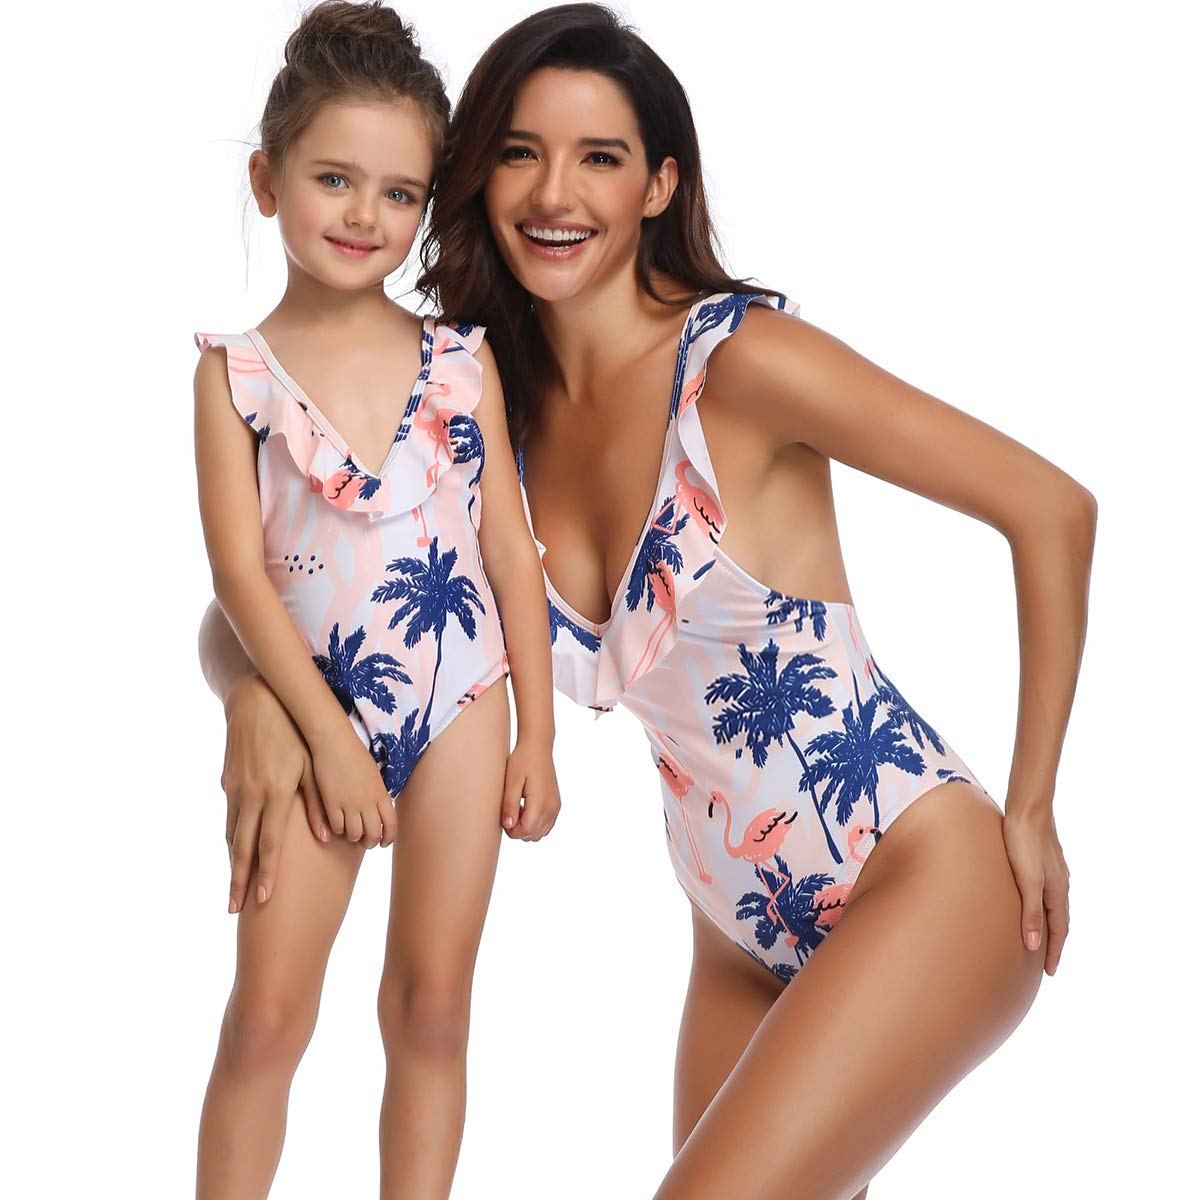 AIKSSOO Mommy and Me One Piece Swimsuit High Cut Low Back Ruffle Straps Bathing Suit